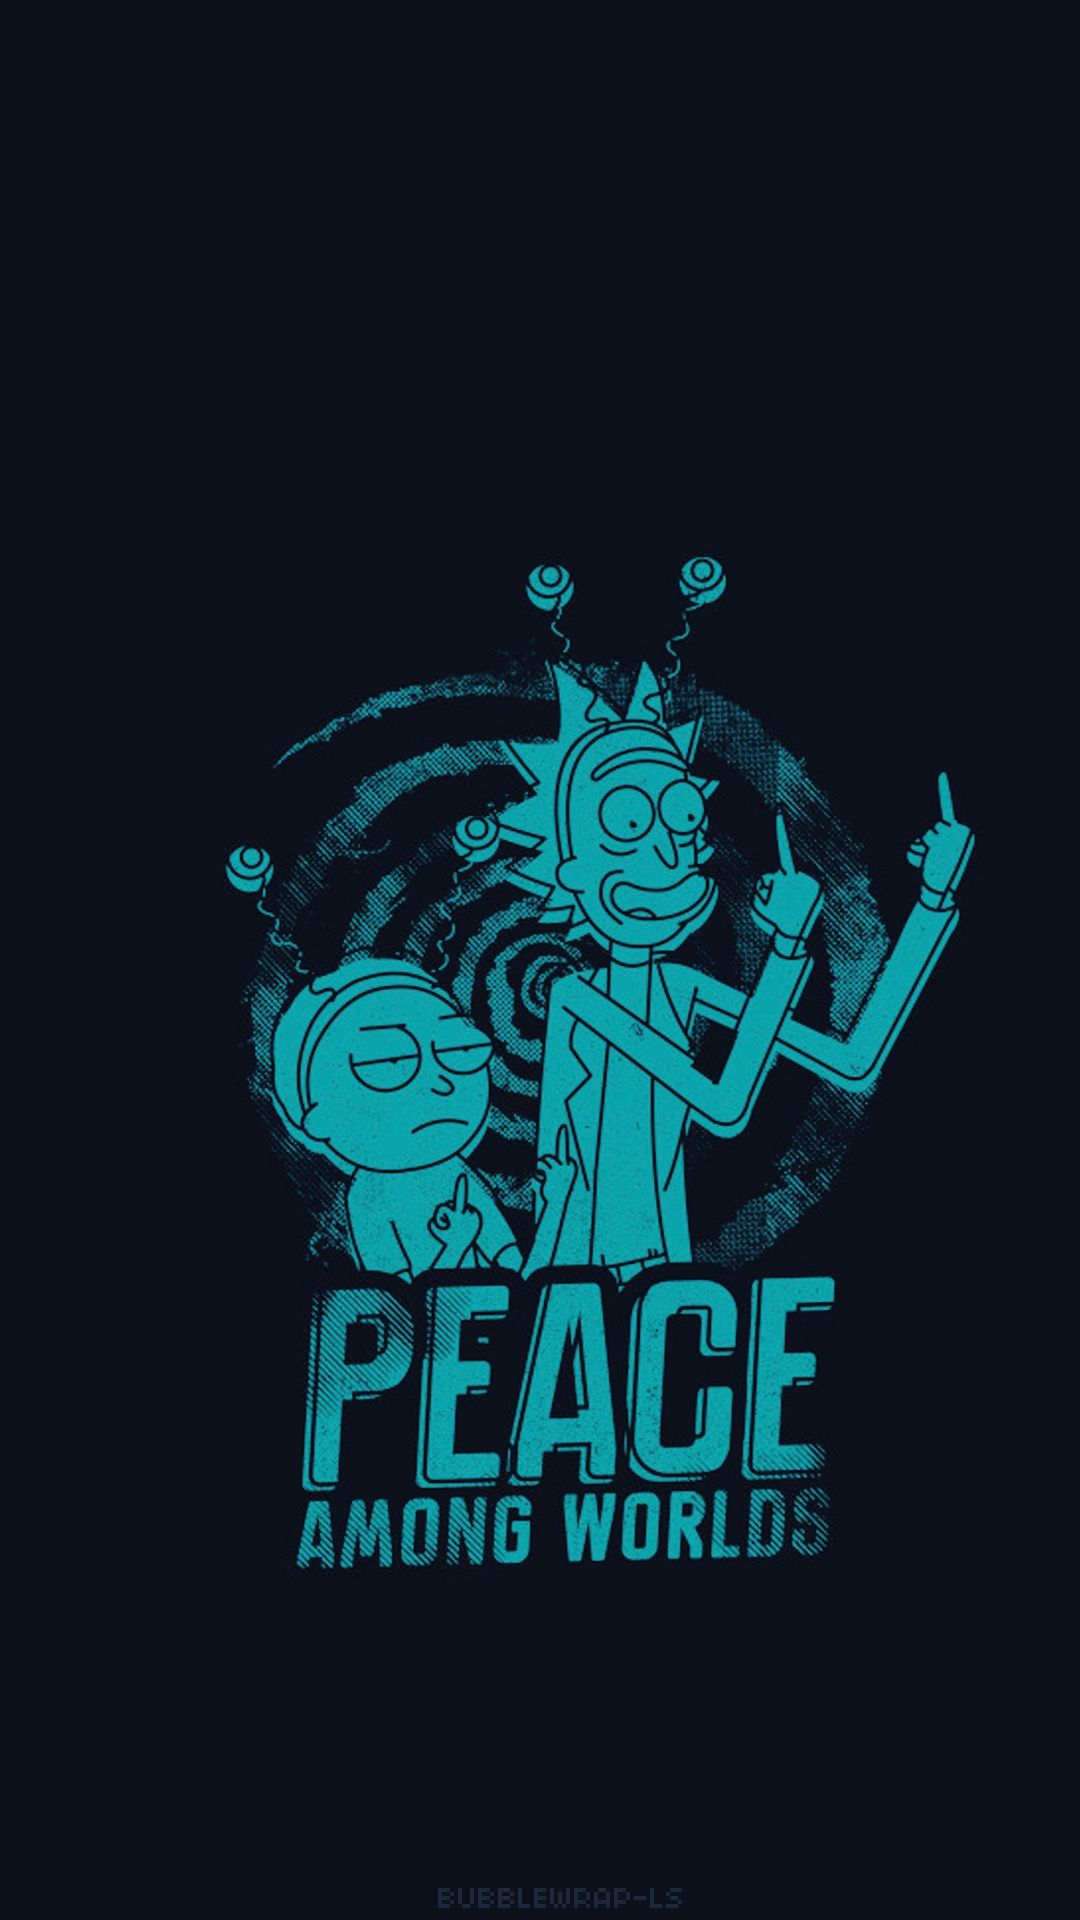 L O C K S C R E E N S Rick And Morty For The Amazing Rick And Morty Lockscreen Wallpaper In 2020 Rick And Morty Poster Rick And Morty Quotes Rick And Morty Tattoo